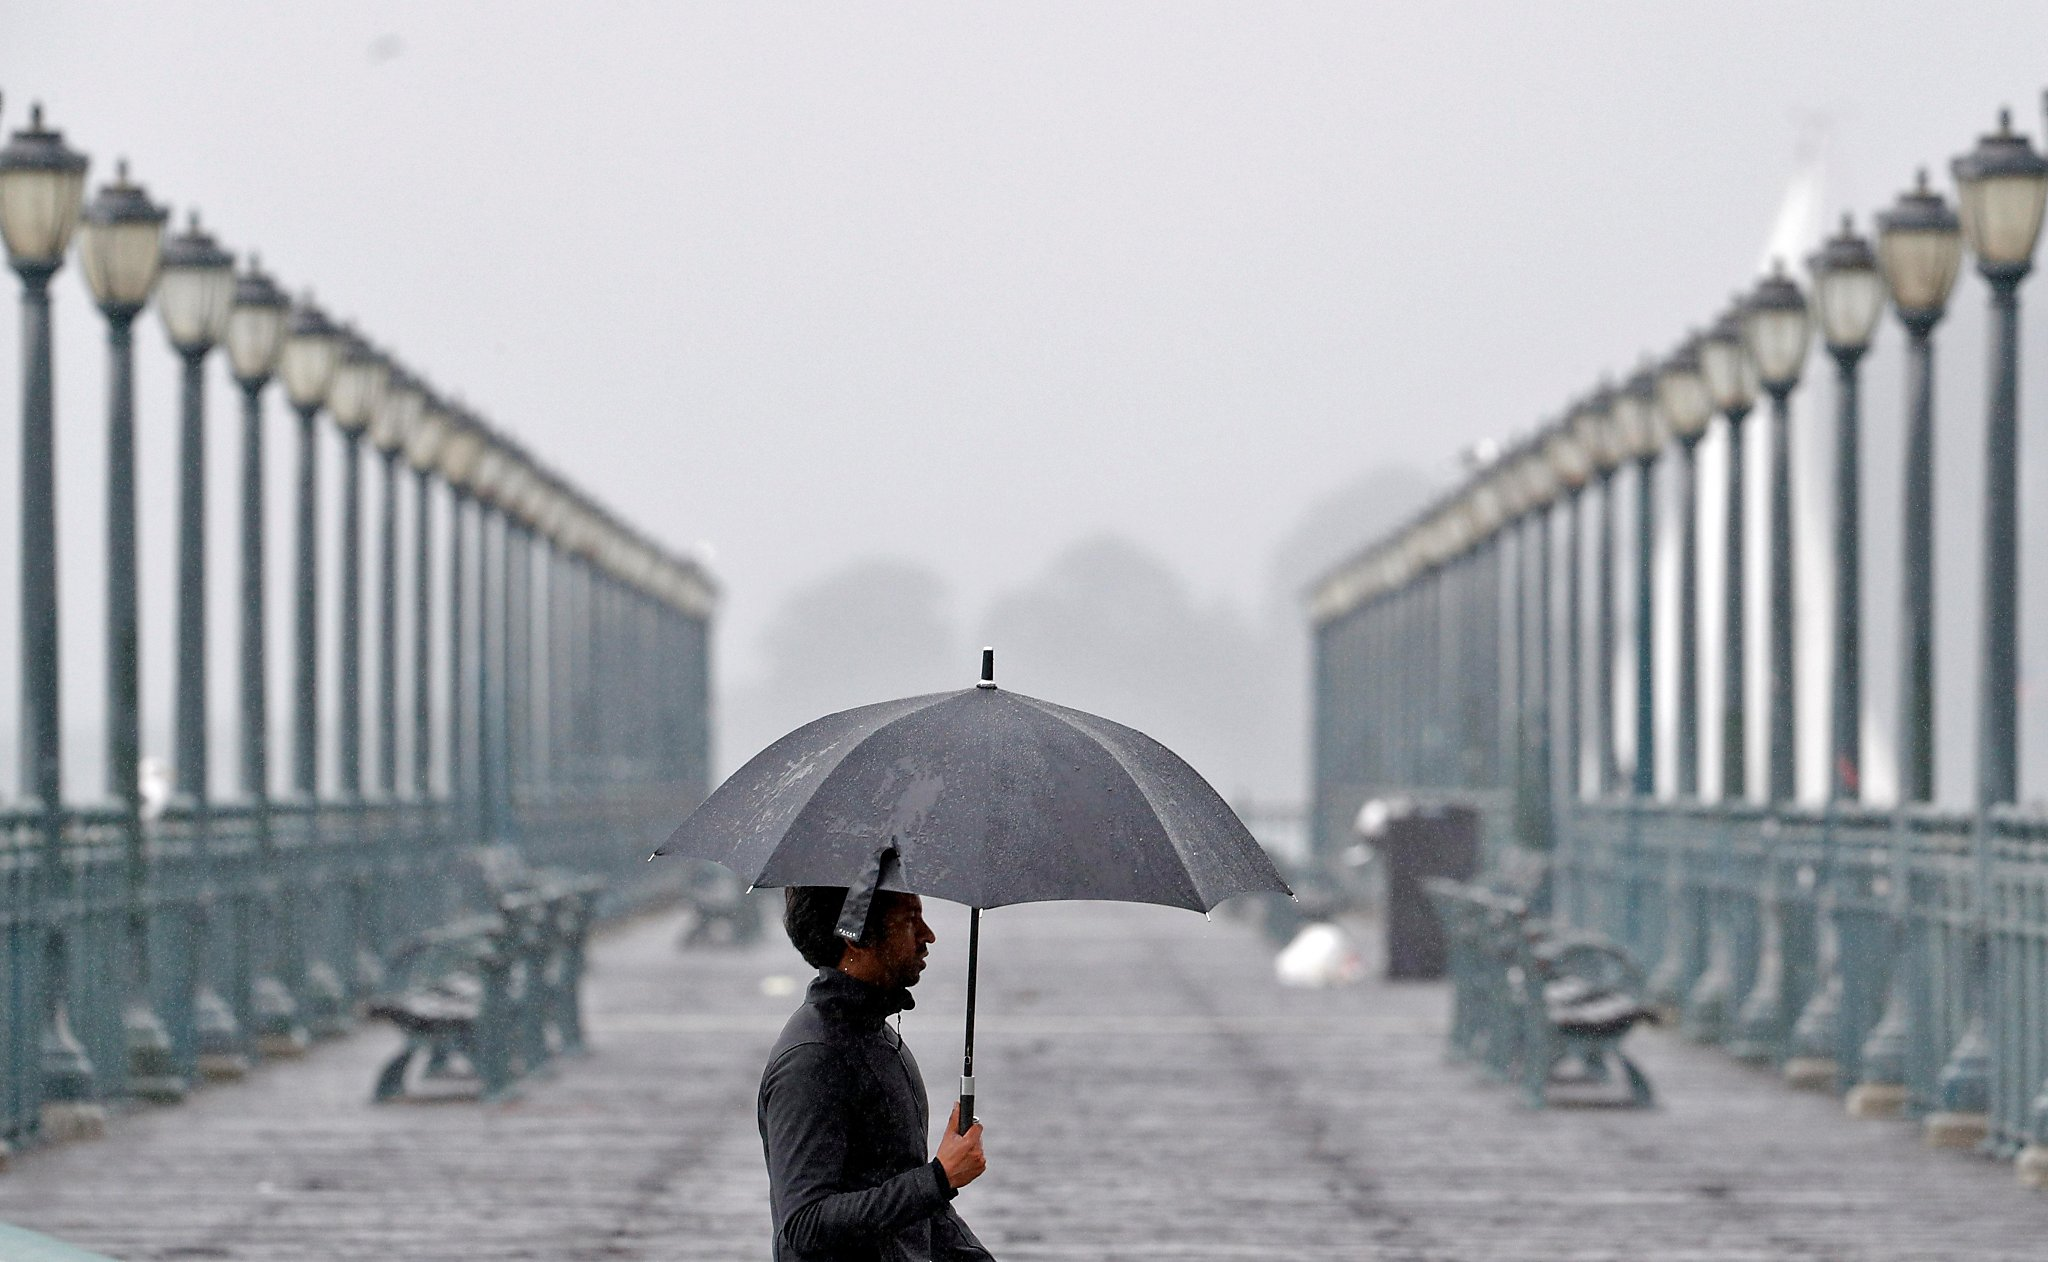 The rainiest cities in the world, where better to go with an umbrella